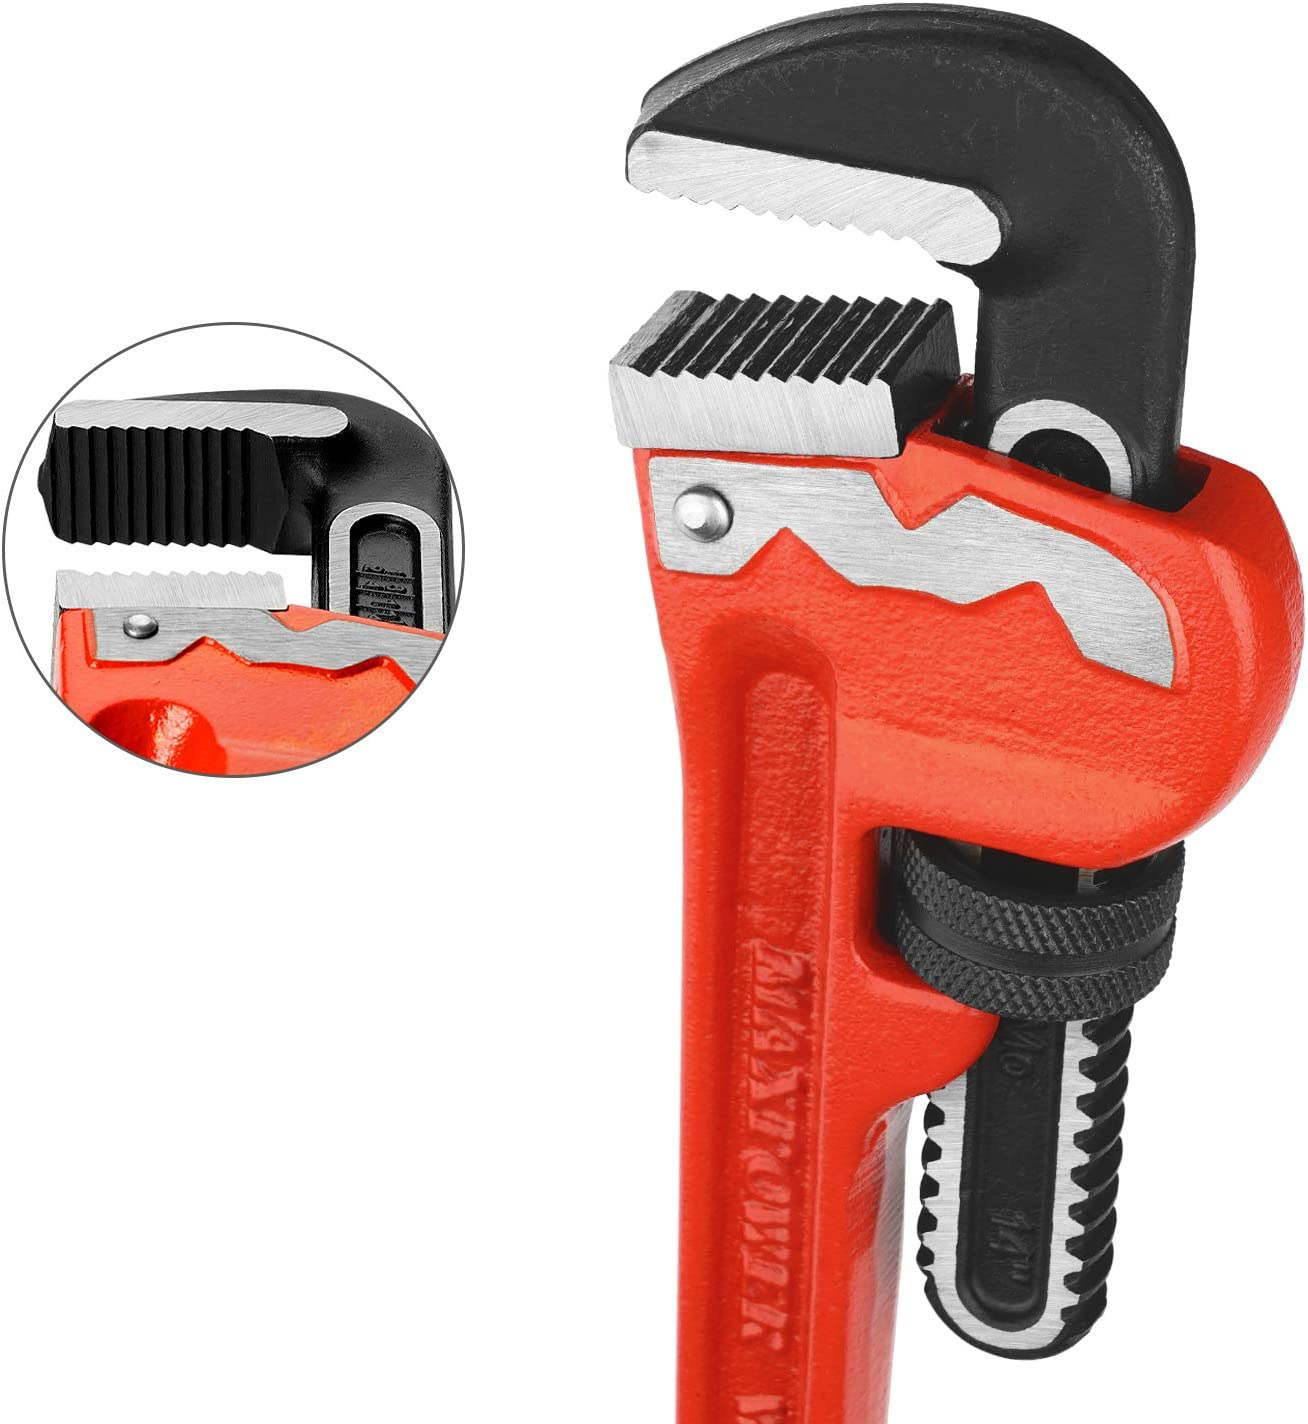 MAXPOWER Heavy Duty Pipe Wrench 24-Inch 600mm Red Heat-Treated Cr-Mo Floating Hook Jaw and Ductile Casting Iron I-Beam Handle Straight Pipe Wrench with Drop Forged